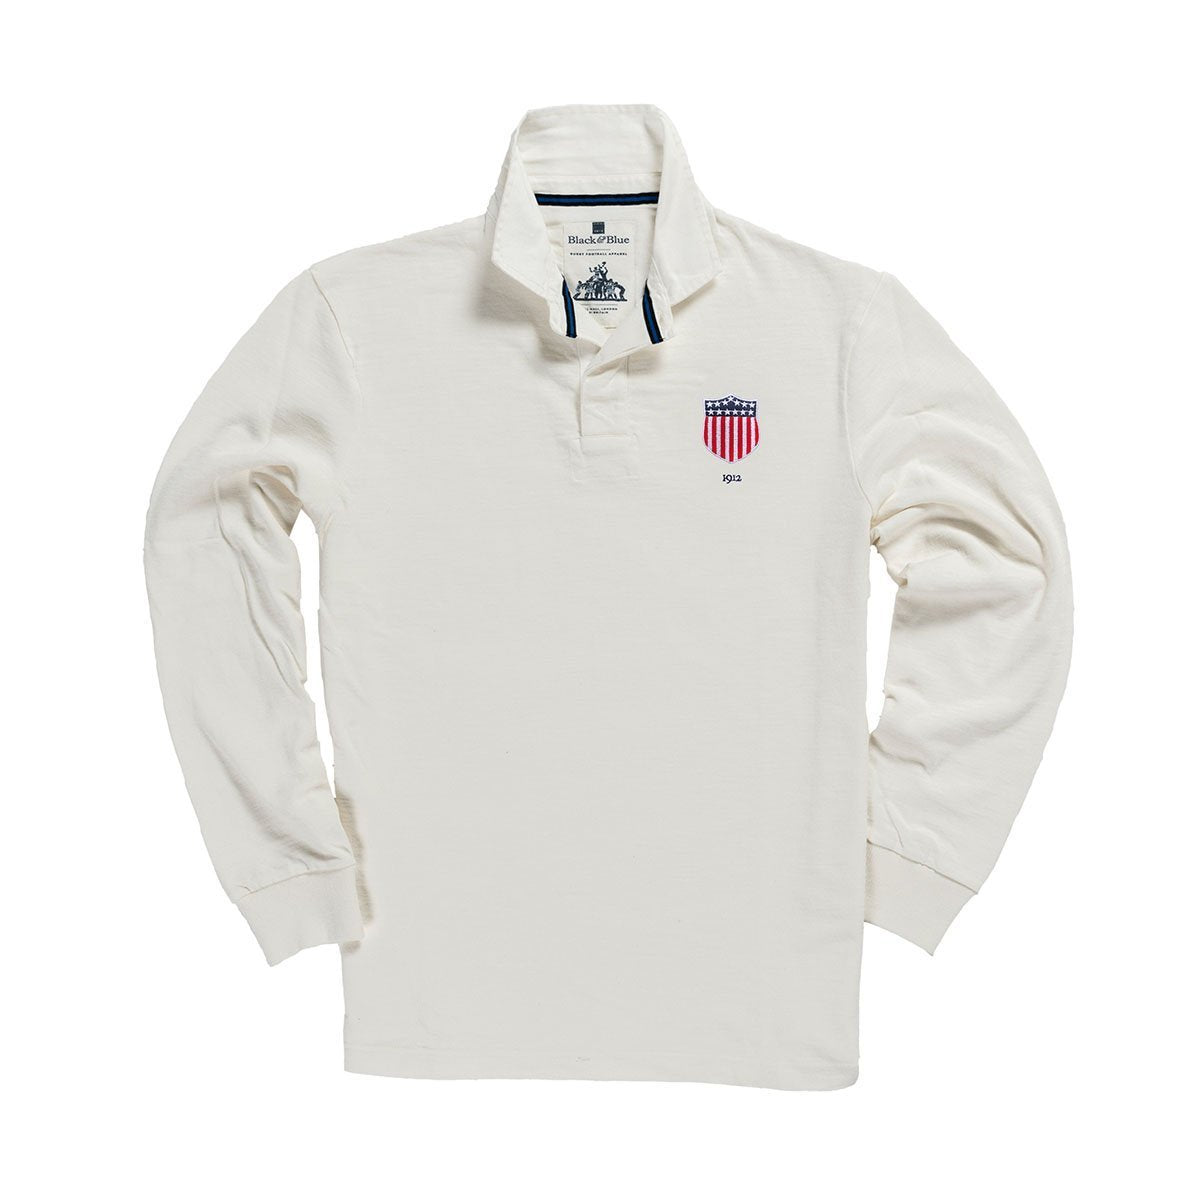 1IN/USXS, Black & Blue 1871, USA 1912 Rugby Shirt, White, Vintage, Classic Rugby Shirt